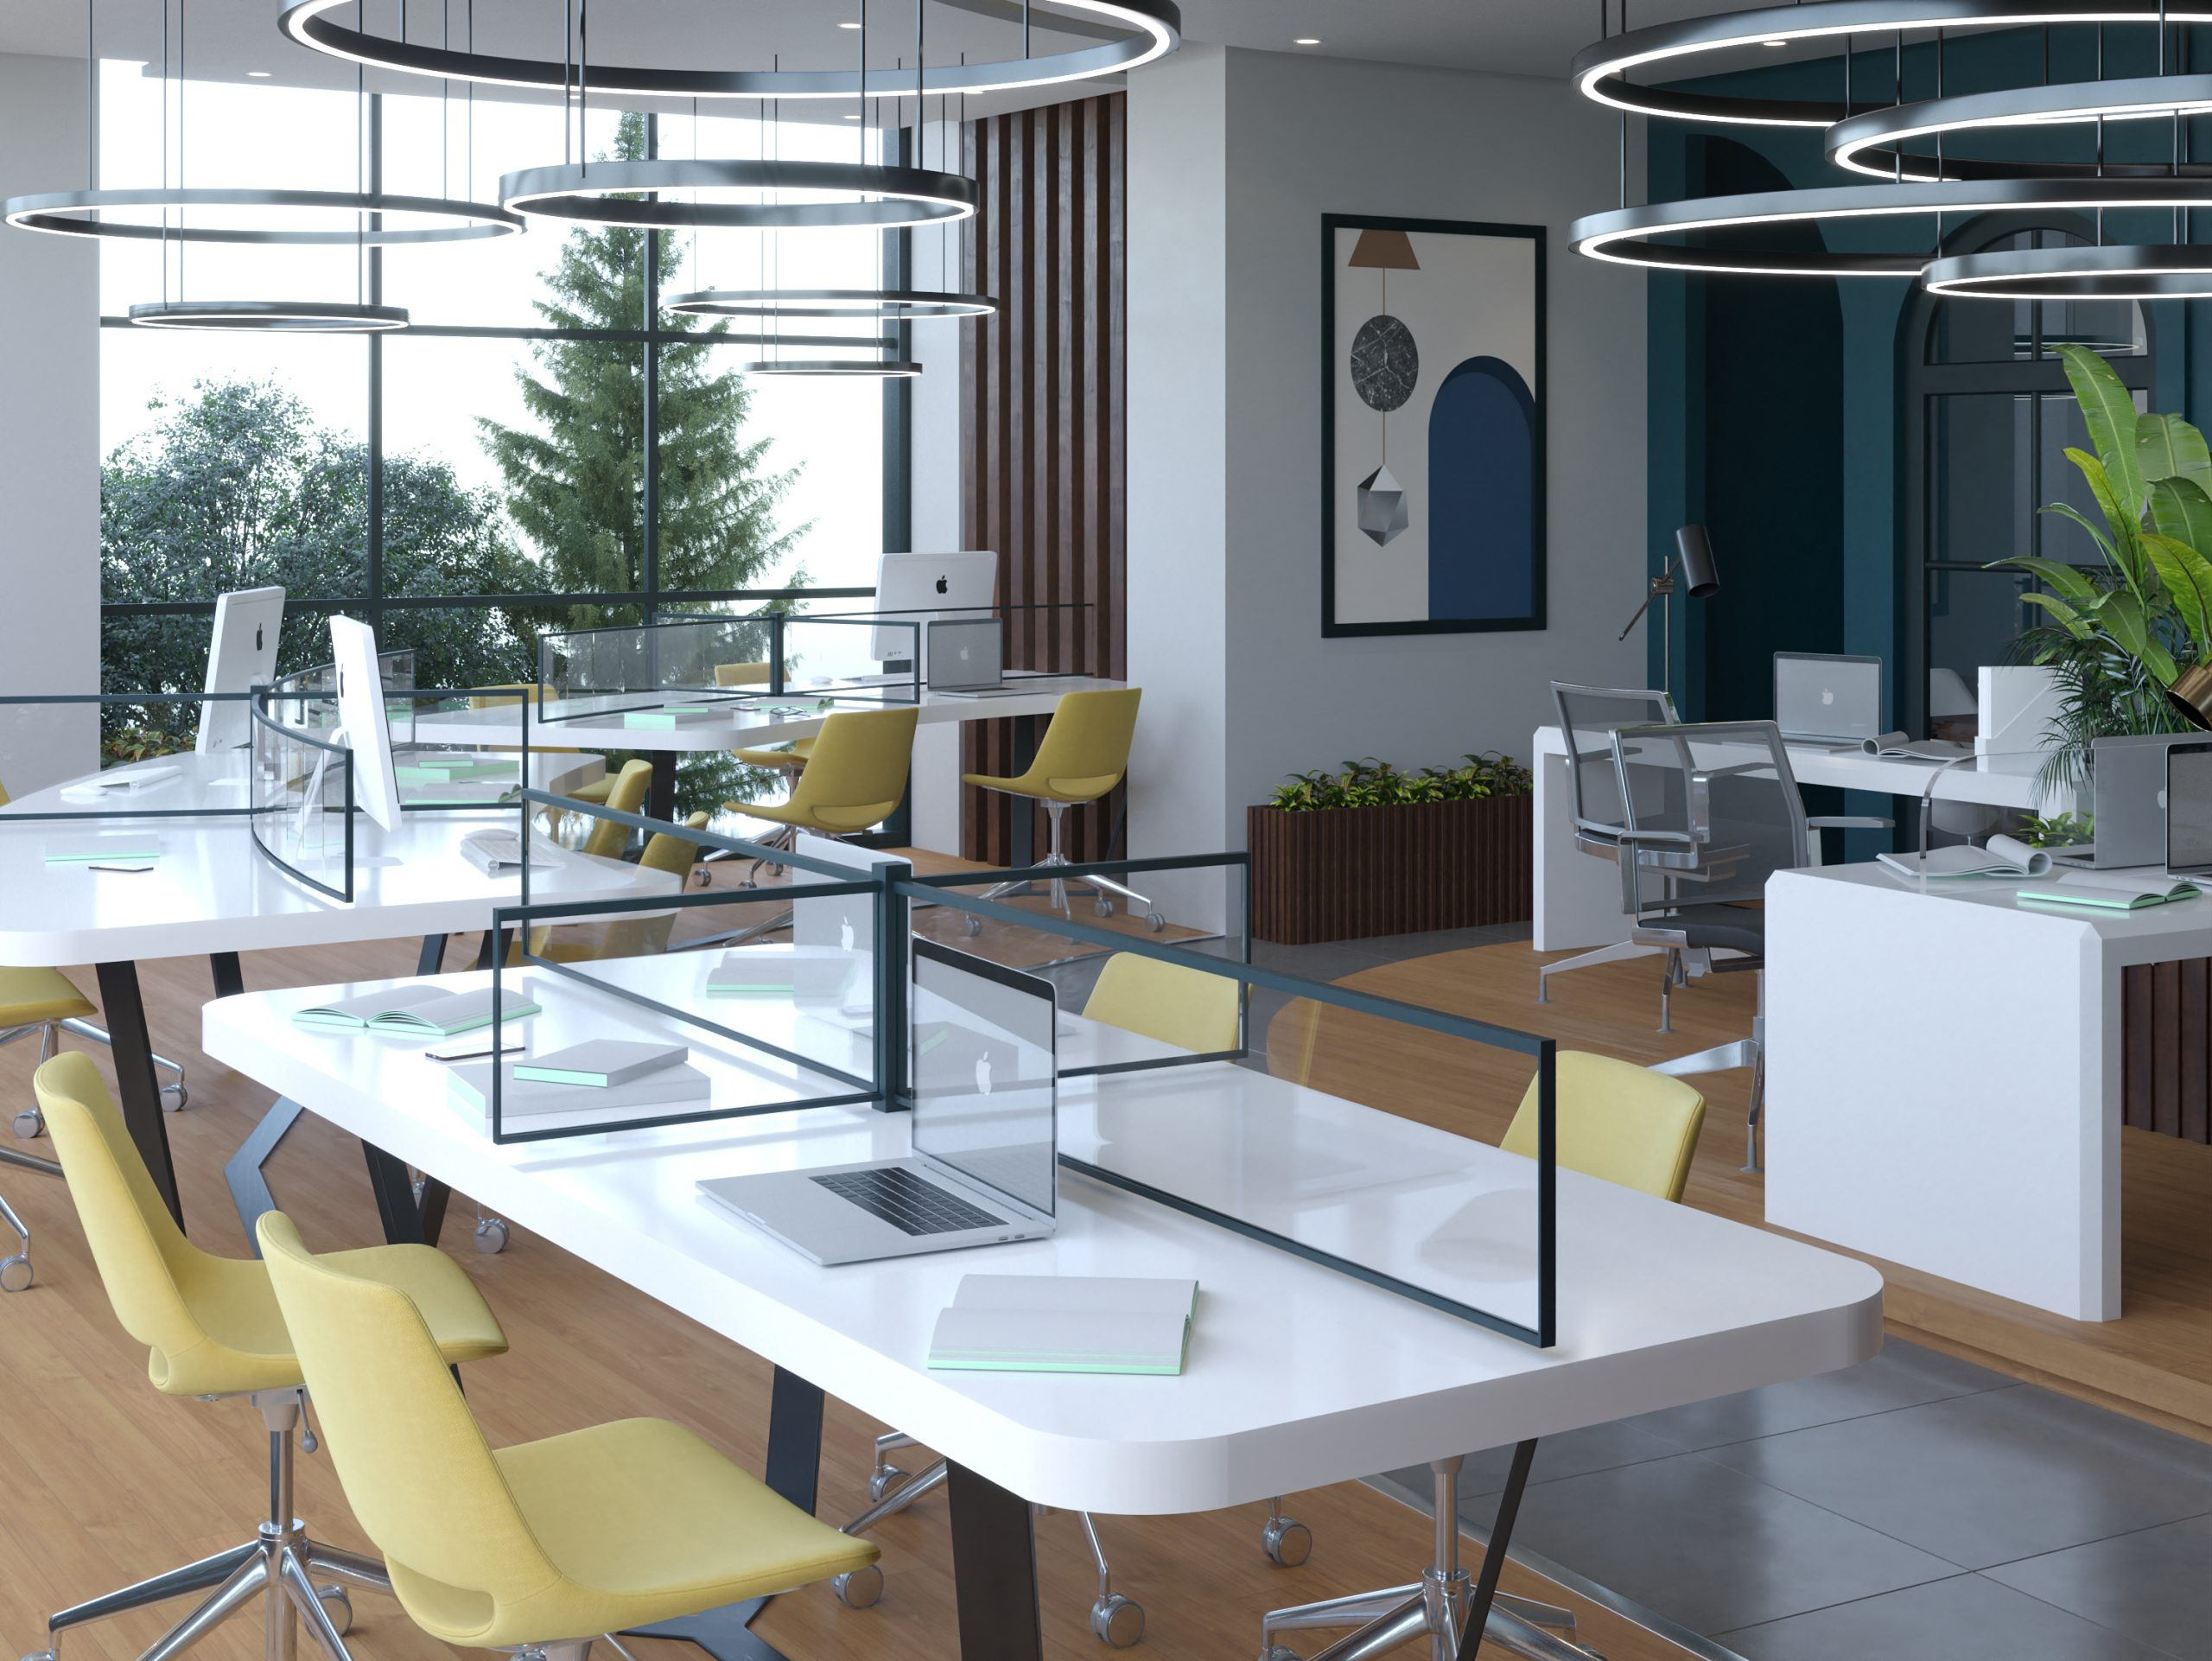 OFFICES - WOOD - STRIPS - PLANTS - DECORATION